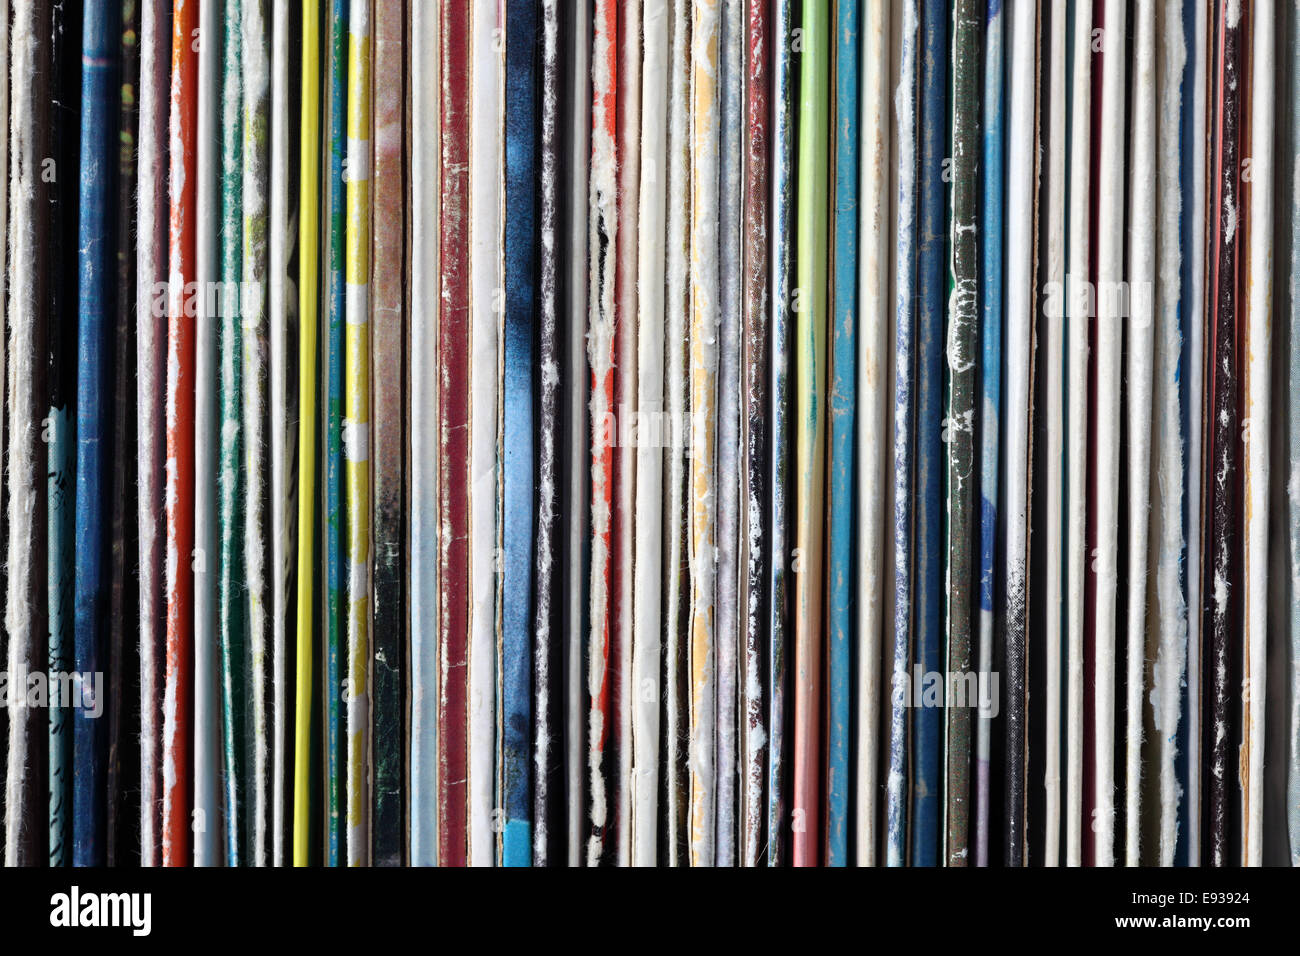 Collection of old vinyl records. - Stock Image